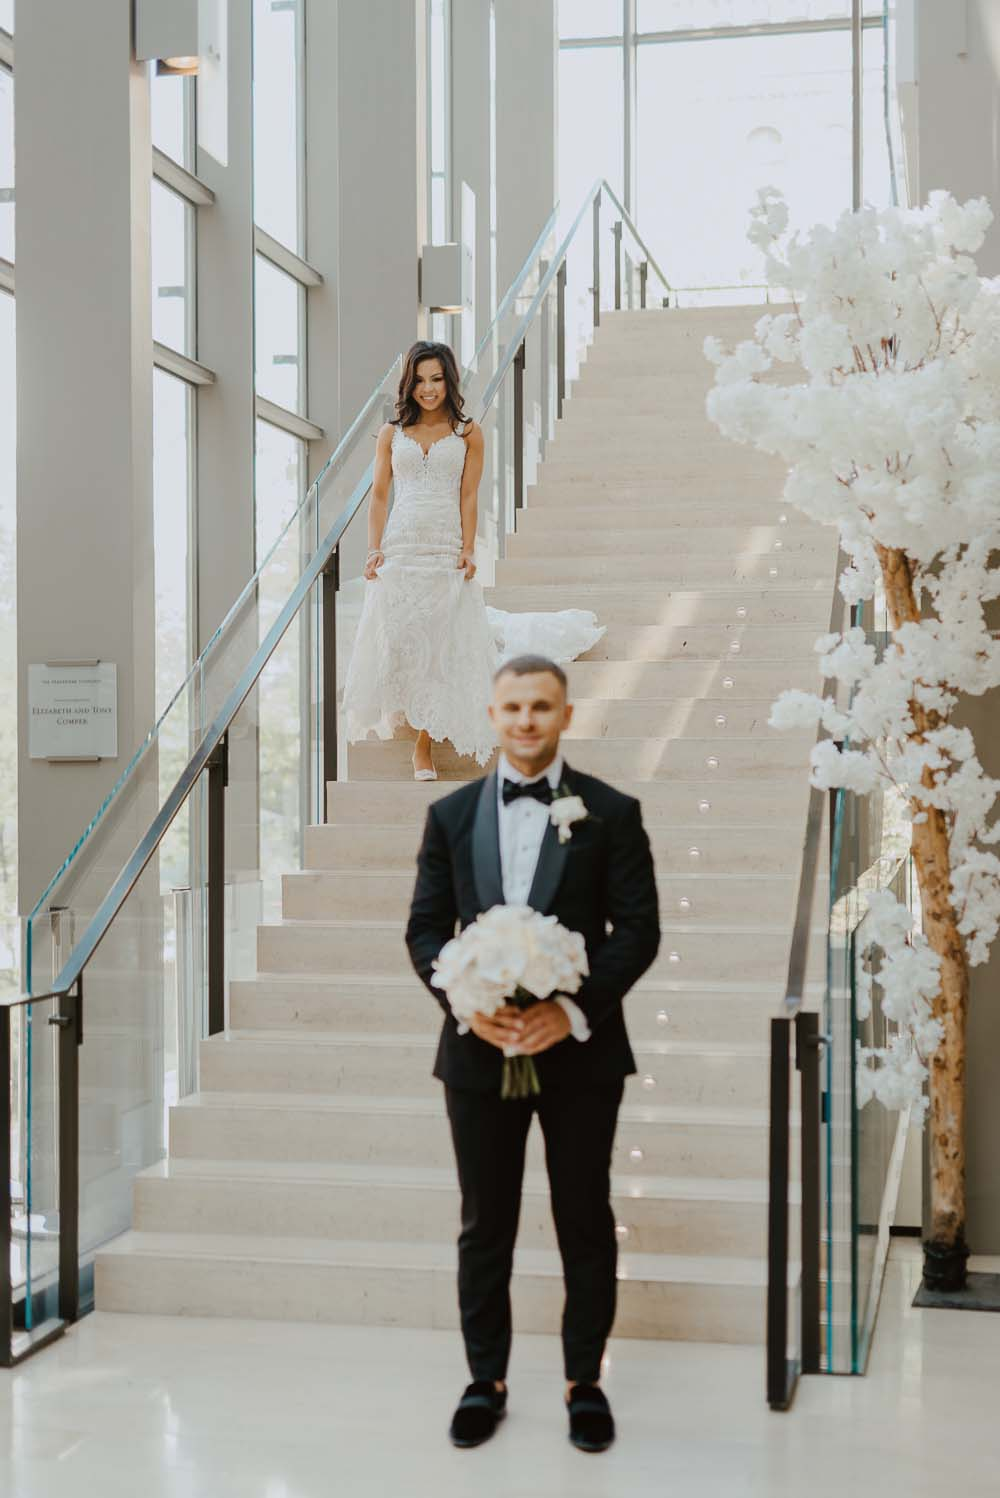 An Opulent Wedding At The Royal Conservatory Of Music - first look